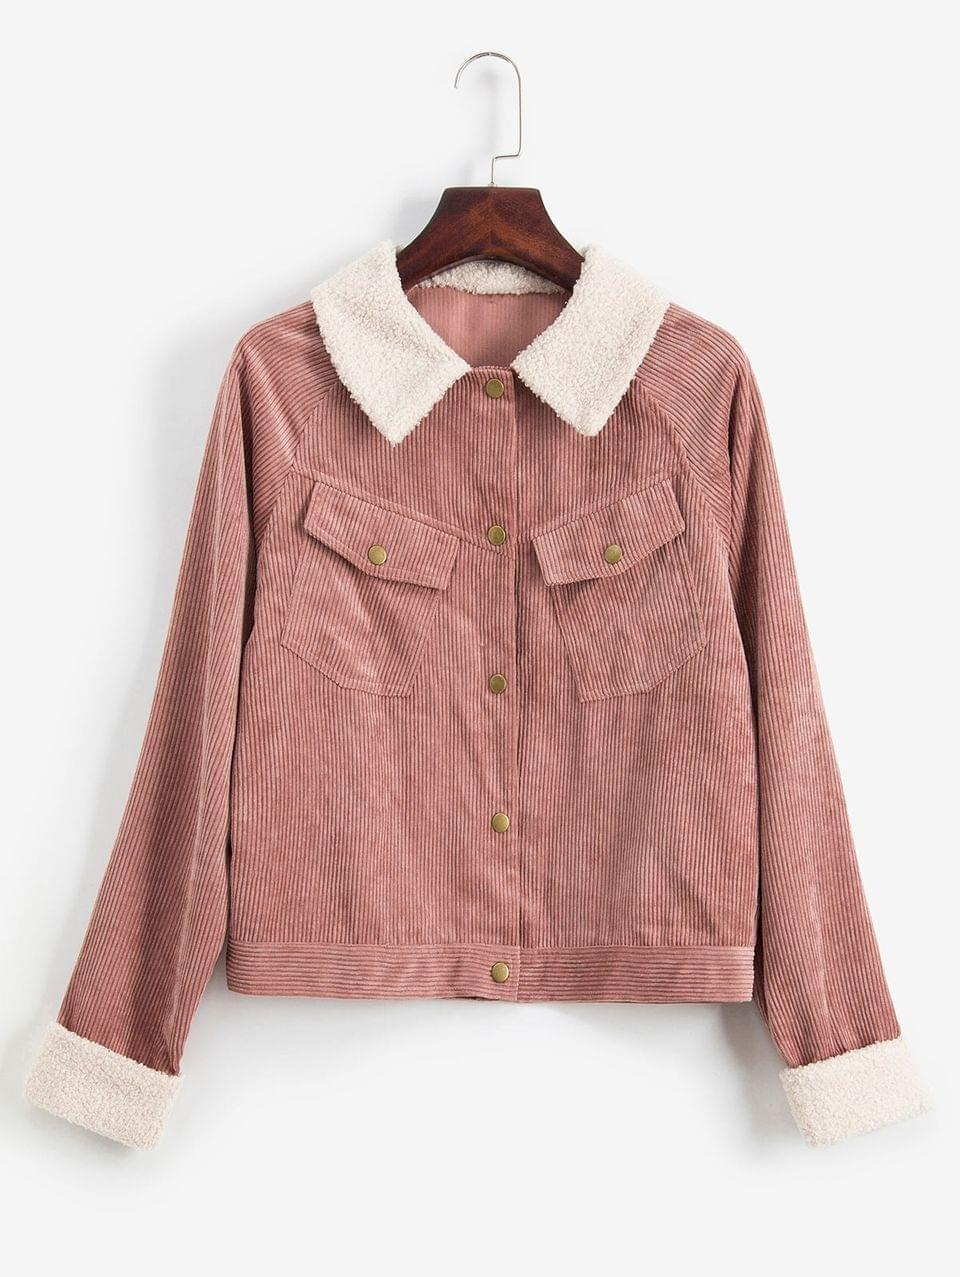 Women's Cuffed Sleeves Snap Button Pockets Corduroy Jacket - Khaki Rose M